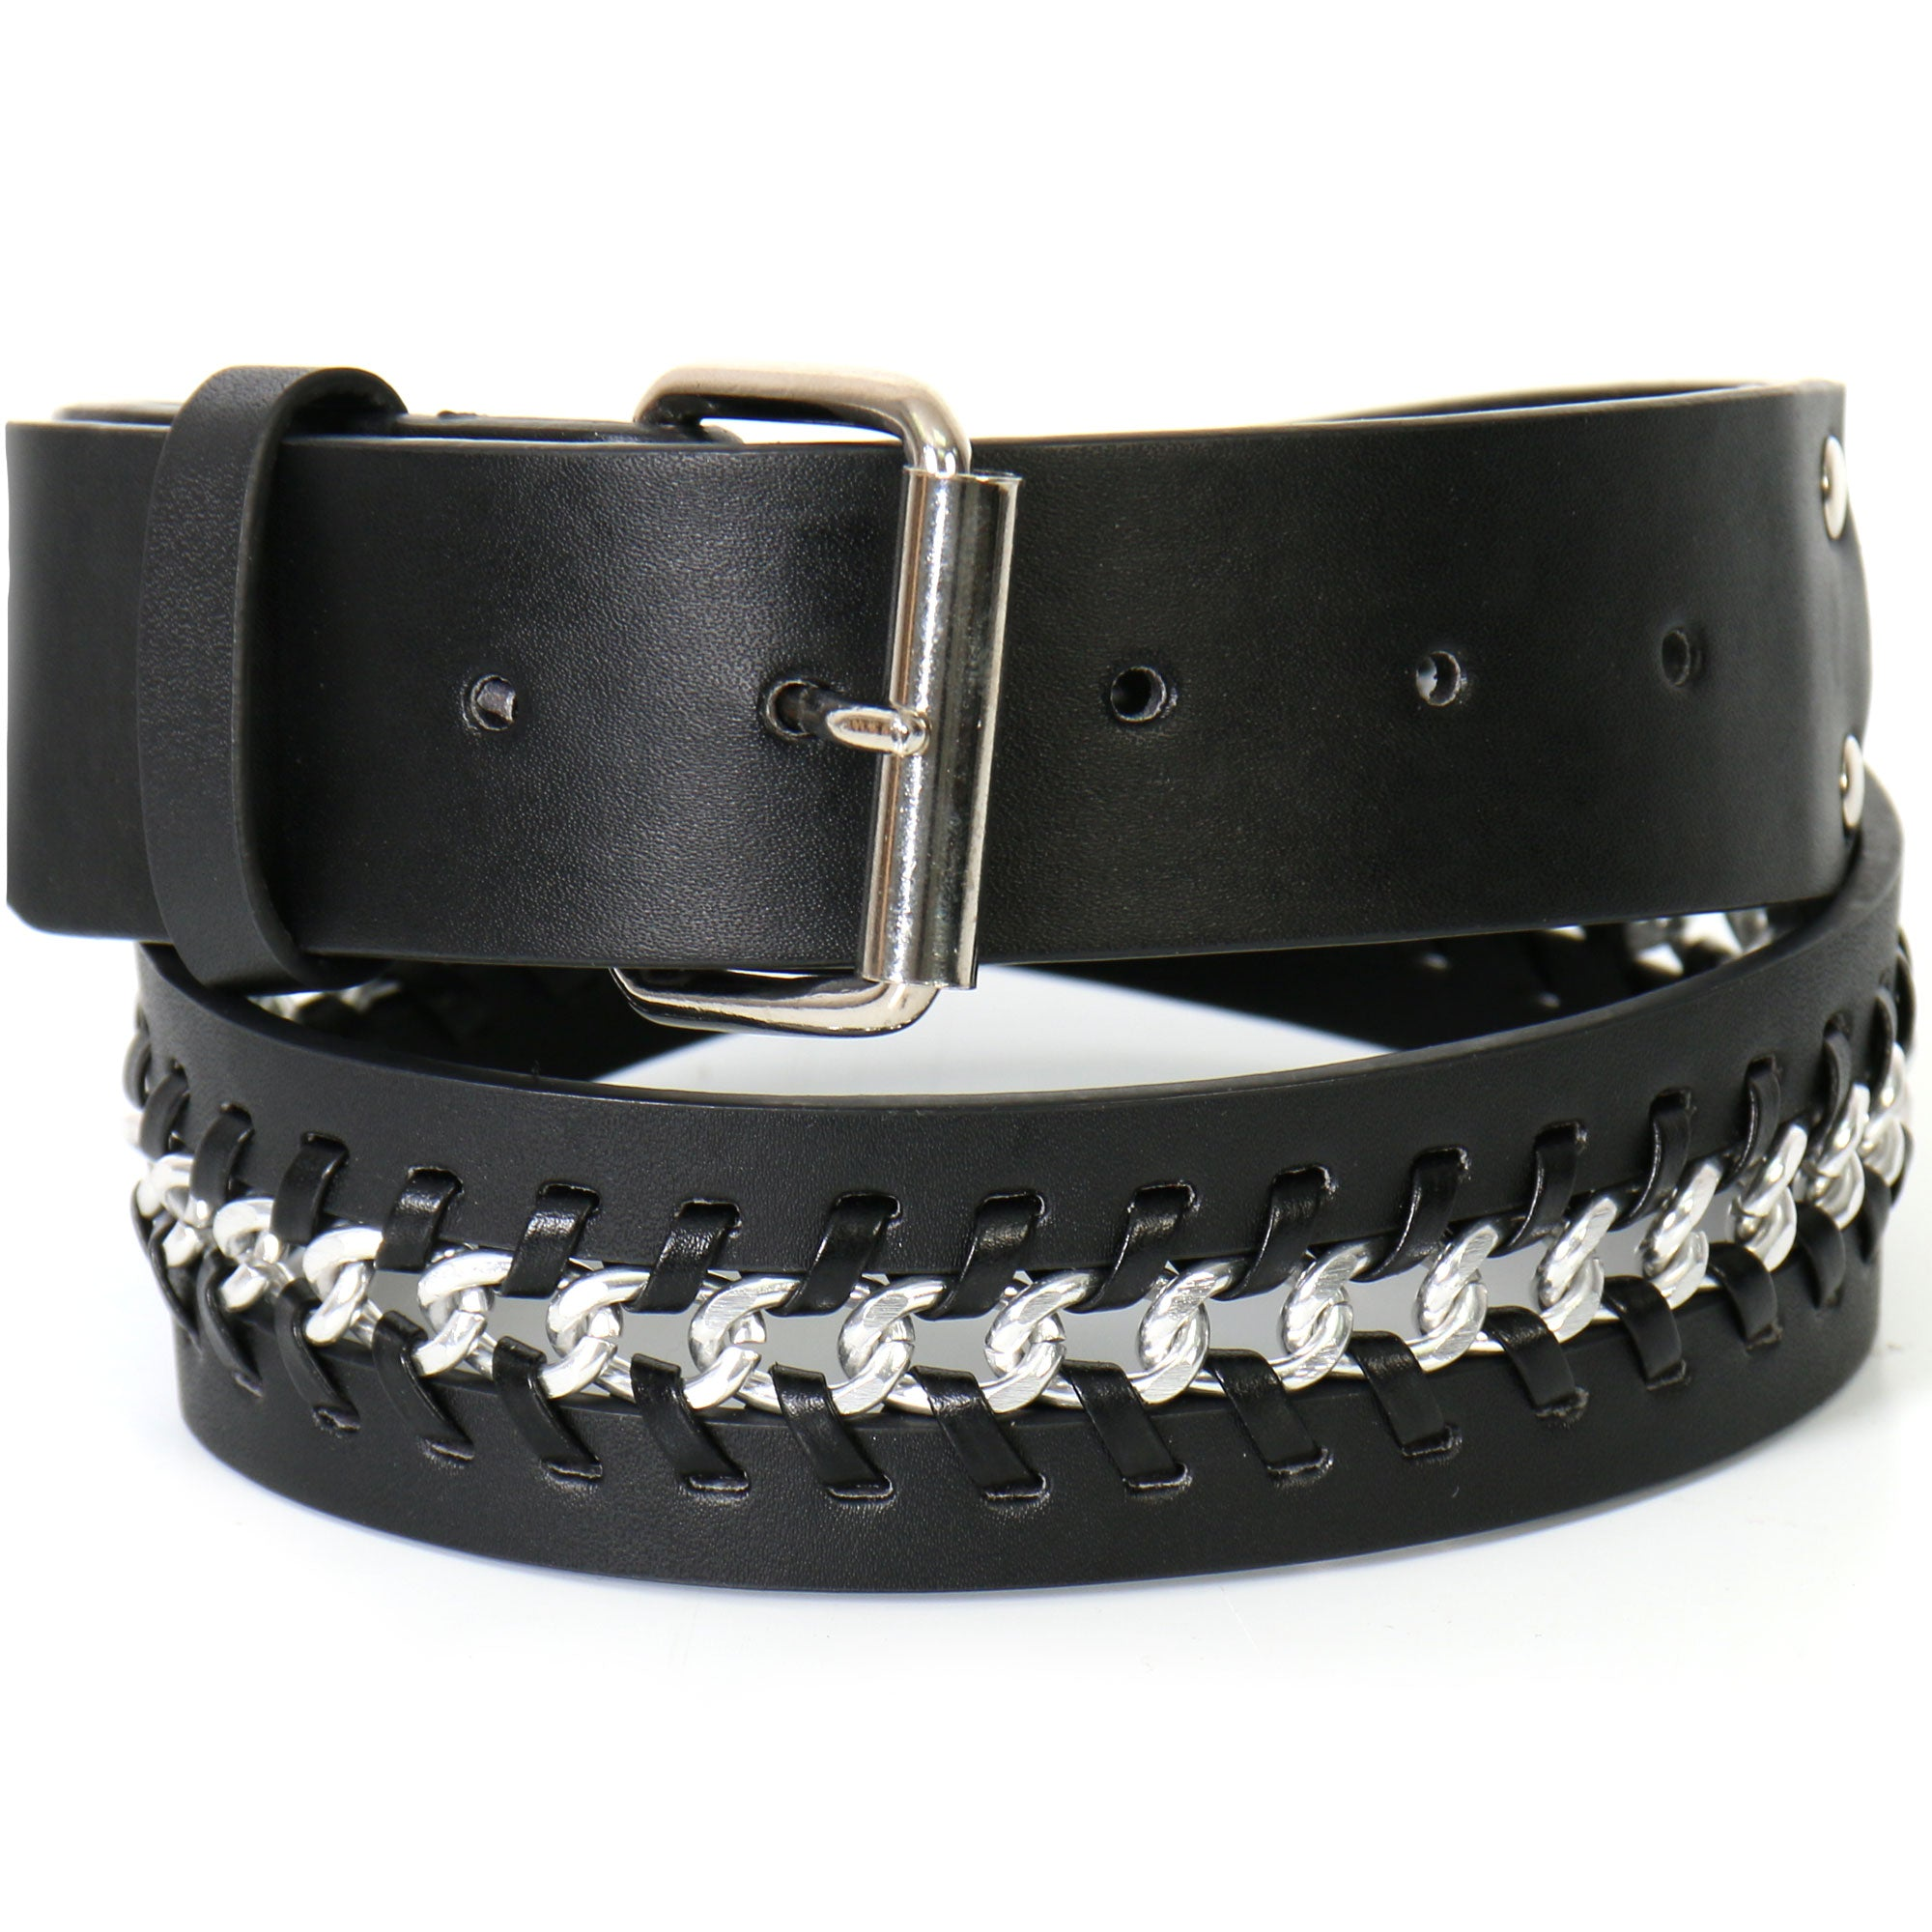 Hot Leathers Center Weave Black Leather Belt